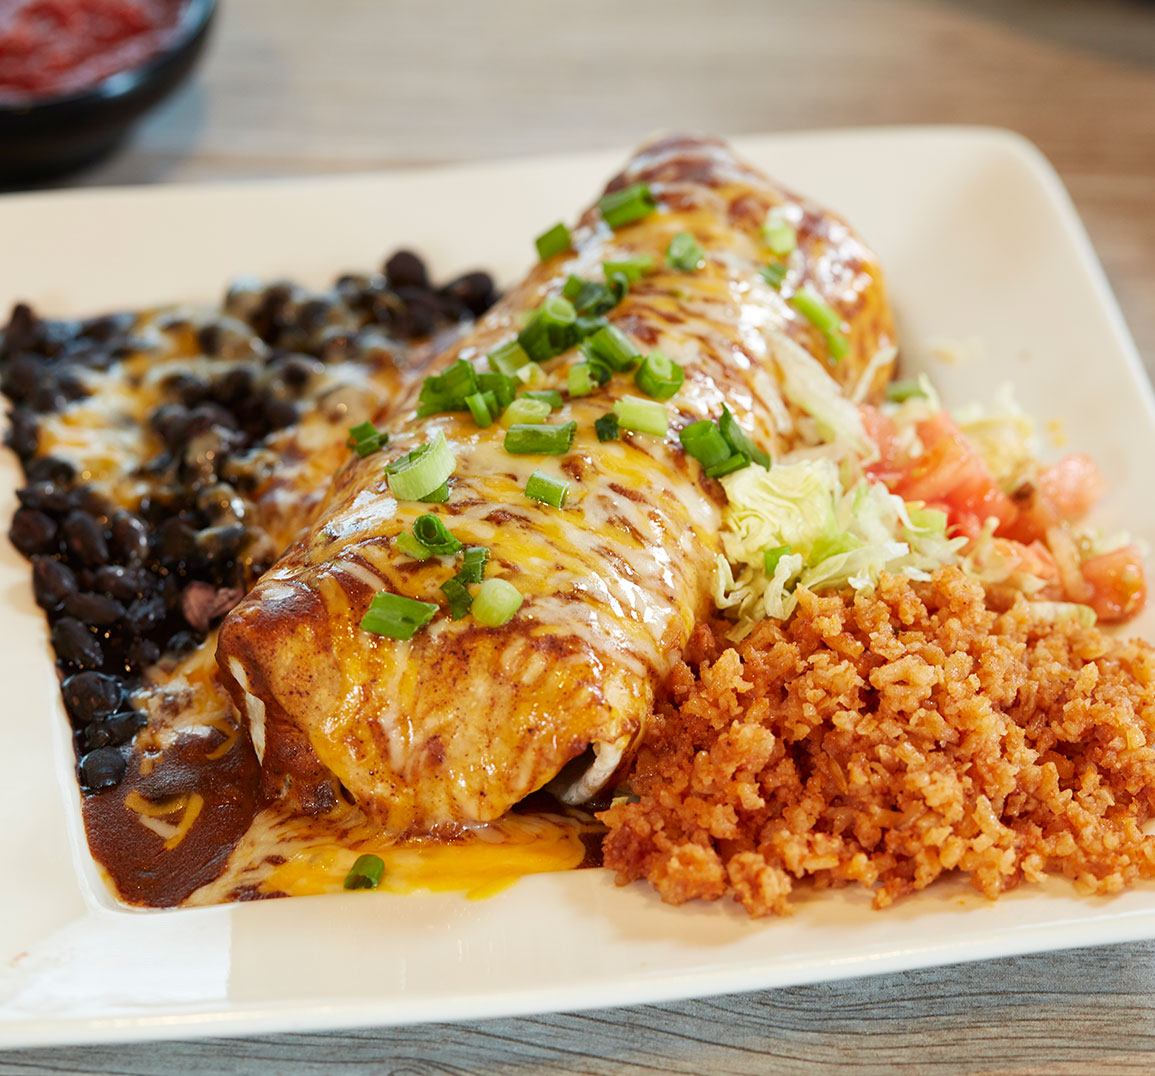 burrito smothered in cheese and enchilada sauce